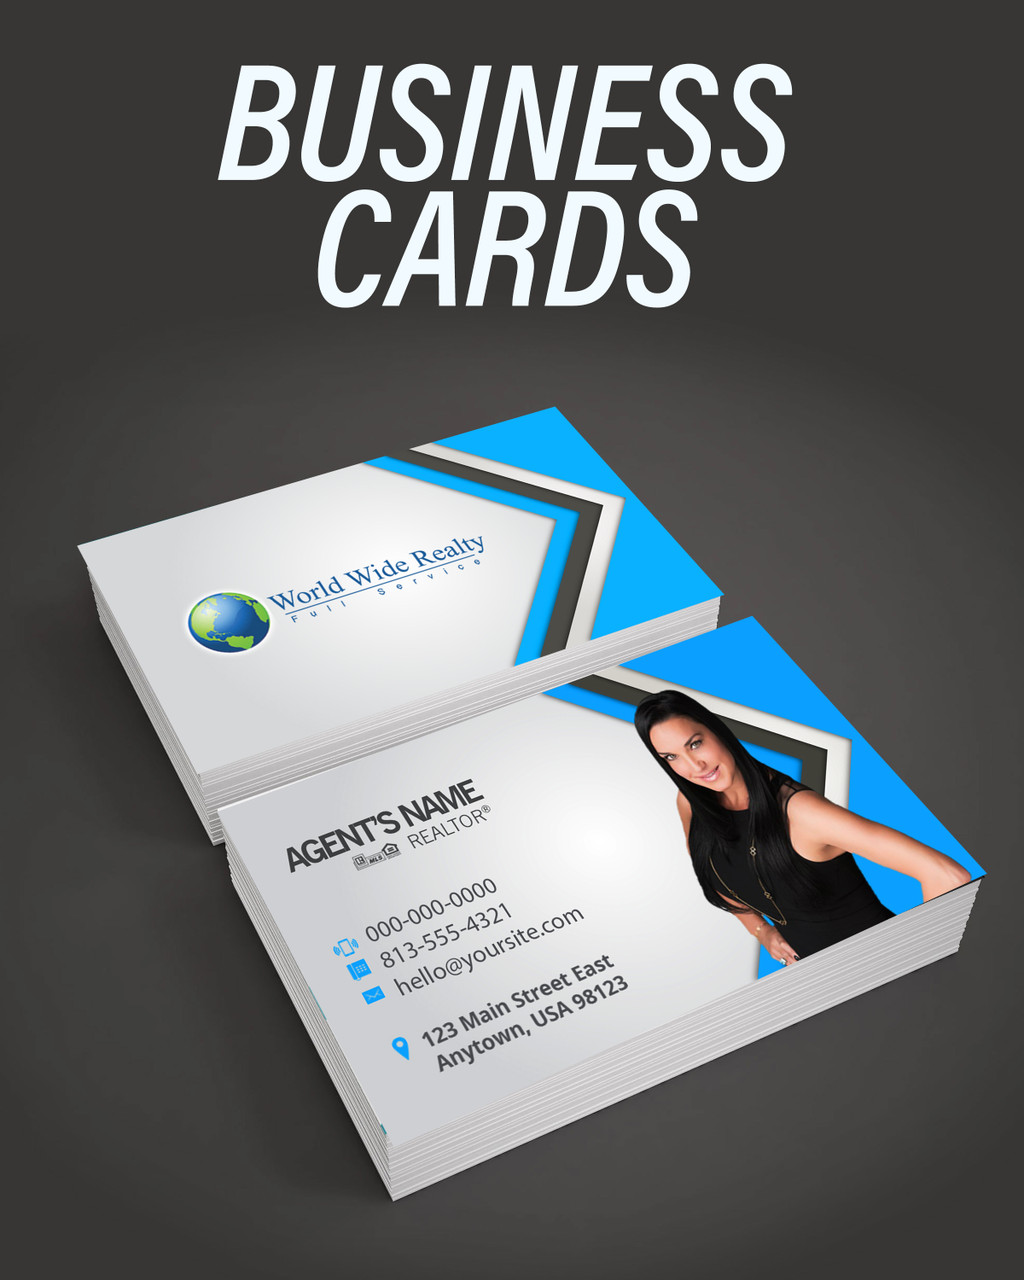 World Wide Realty Business Cards